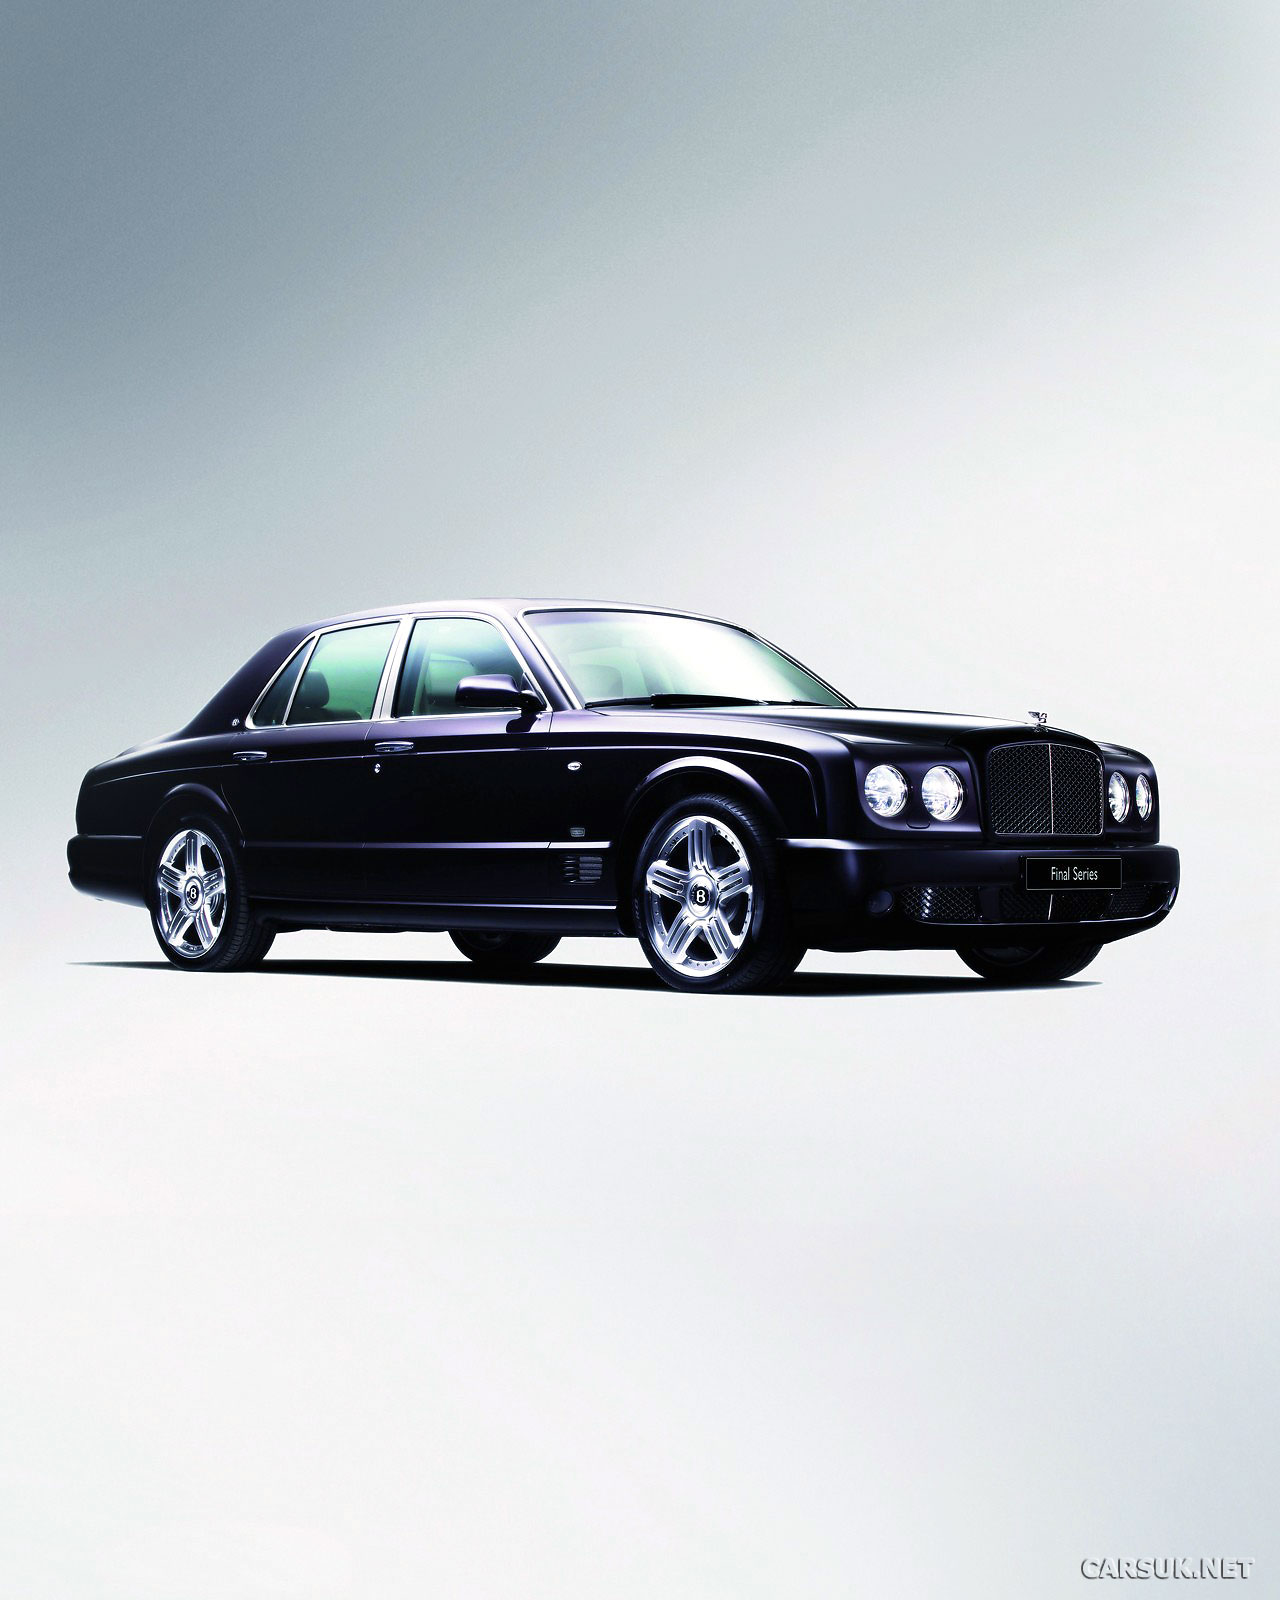 Bentley Arnage Replacement To Take On Rolls Royce